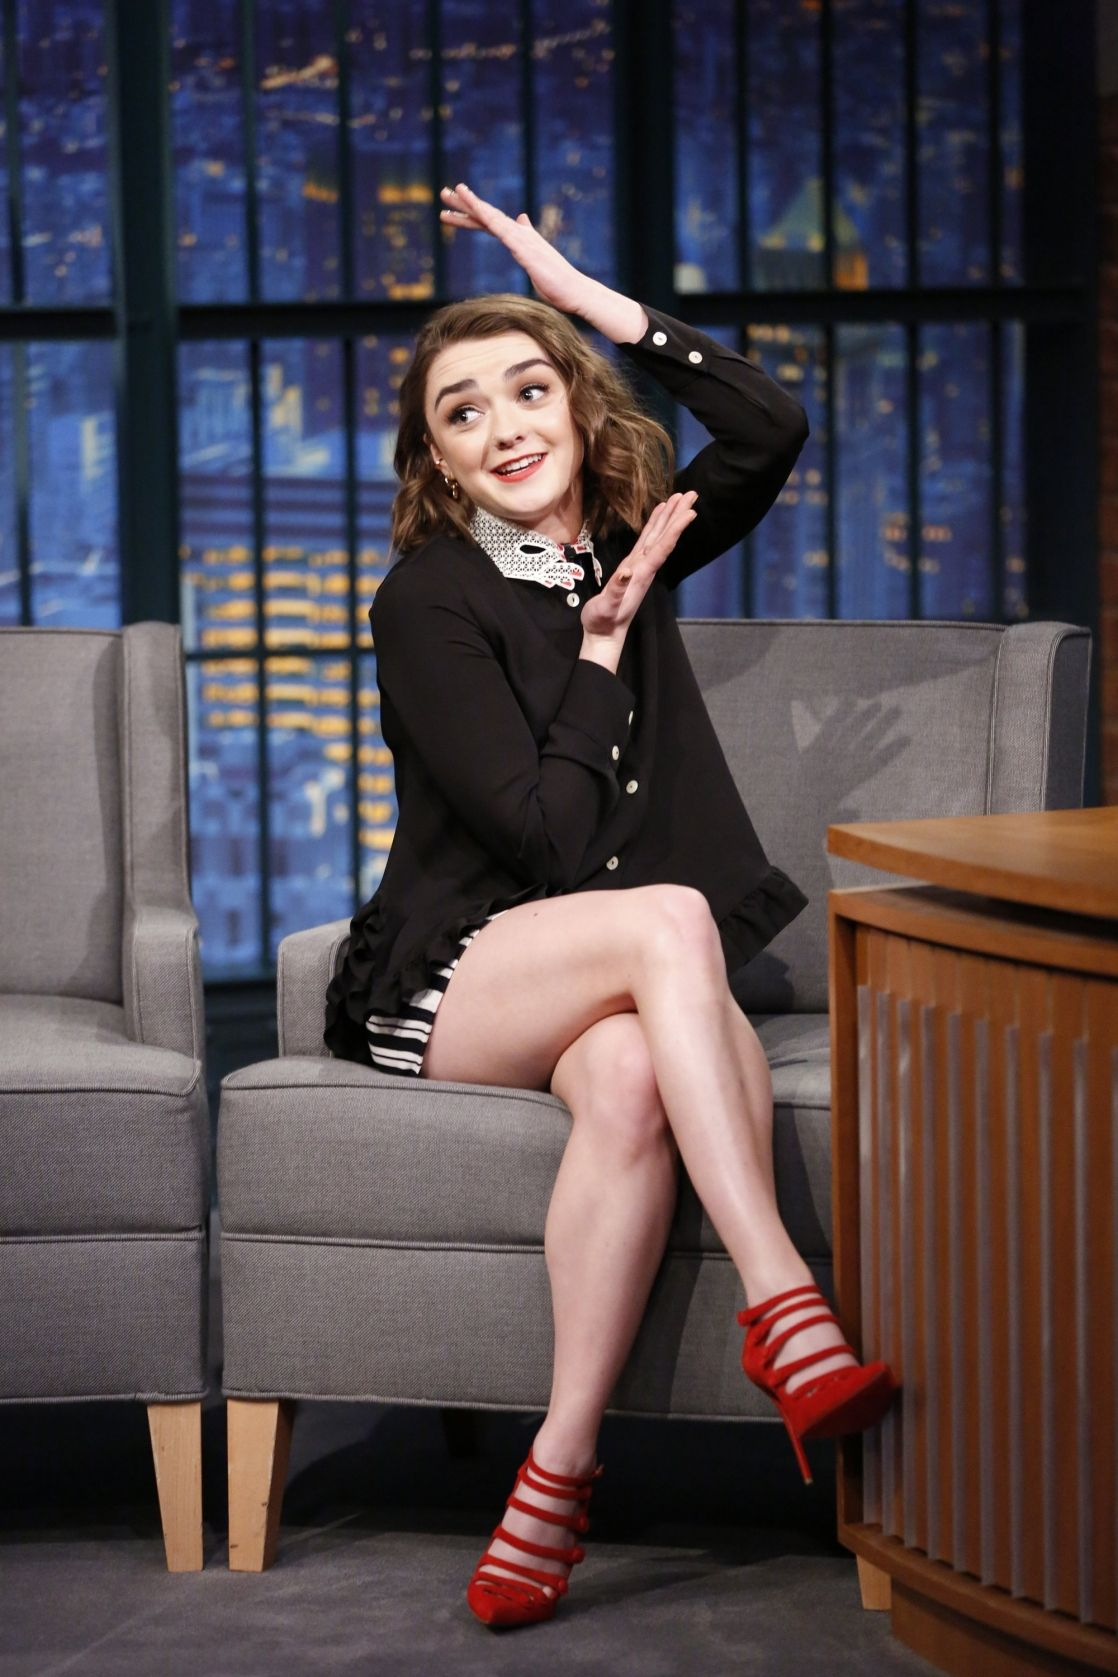 maisie williams - photo #33